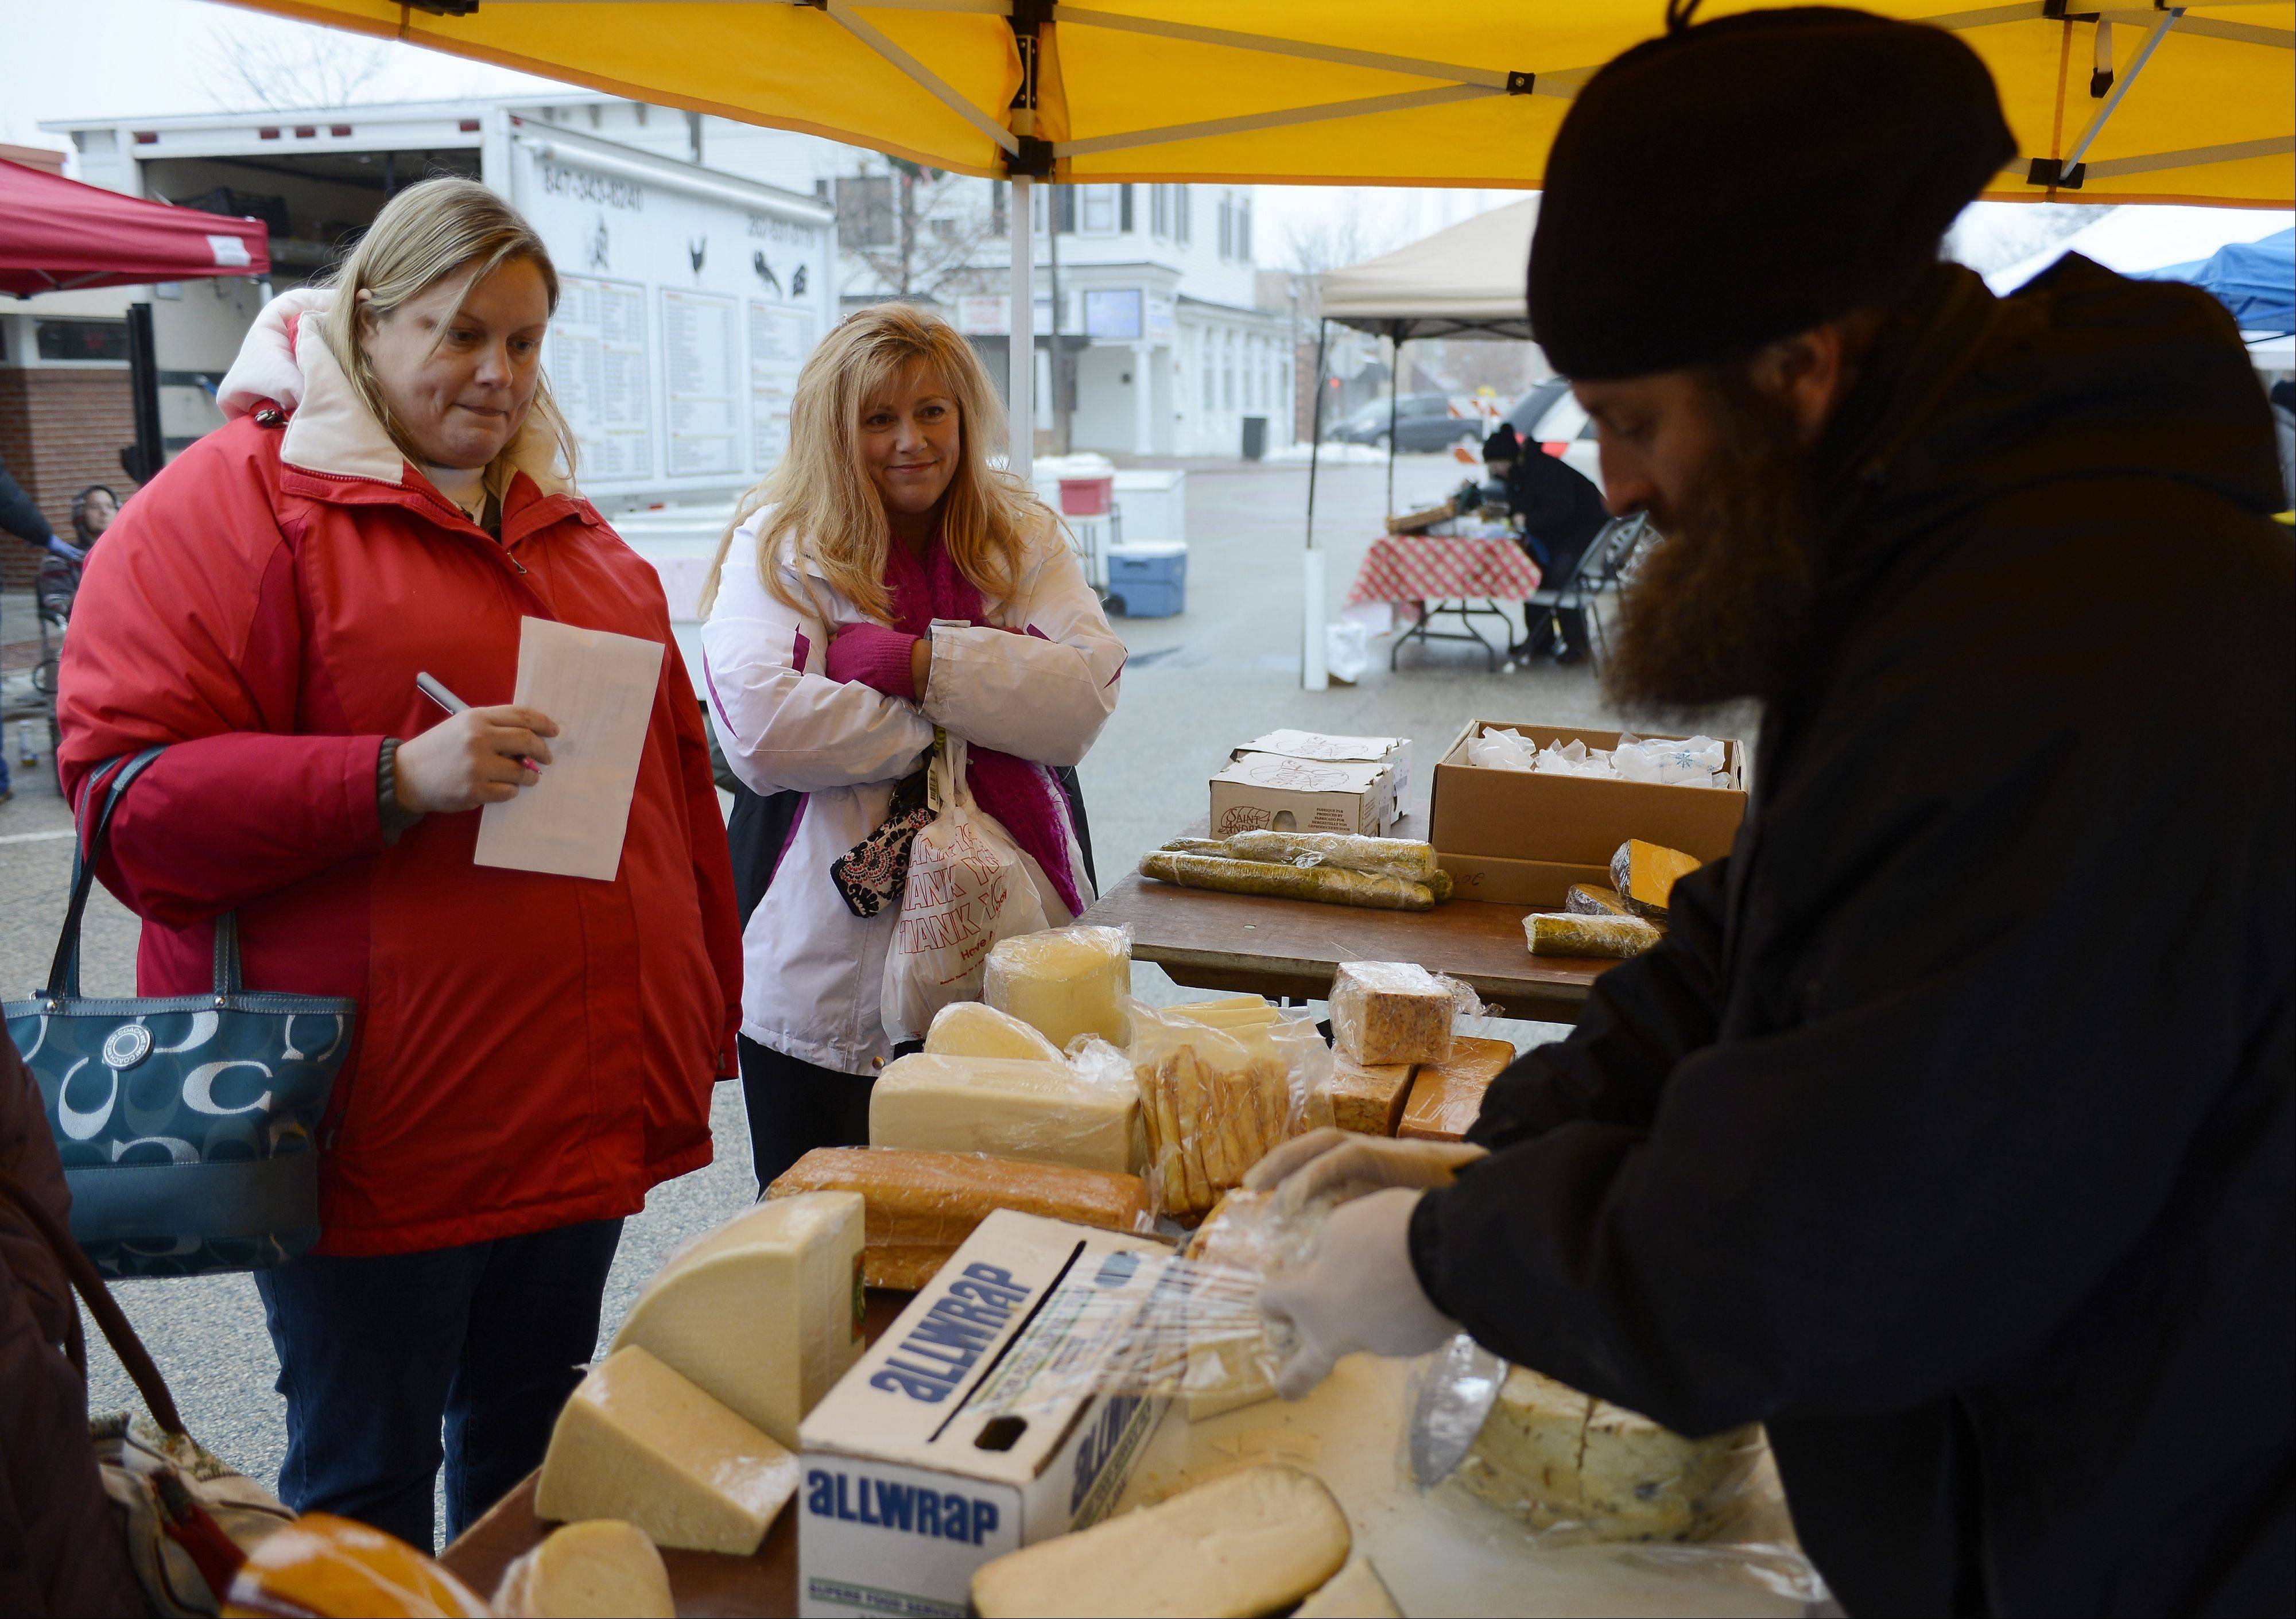 Jennifer Stiles, left, of Grayslake and Lori Maier of Gurnee wait as Michael Rhodes of the Cheese People wraps organic, handcrafted cheese during the Fall Farmers Market, the last of the season, Saturday in downtown Grayslake.